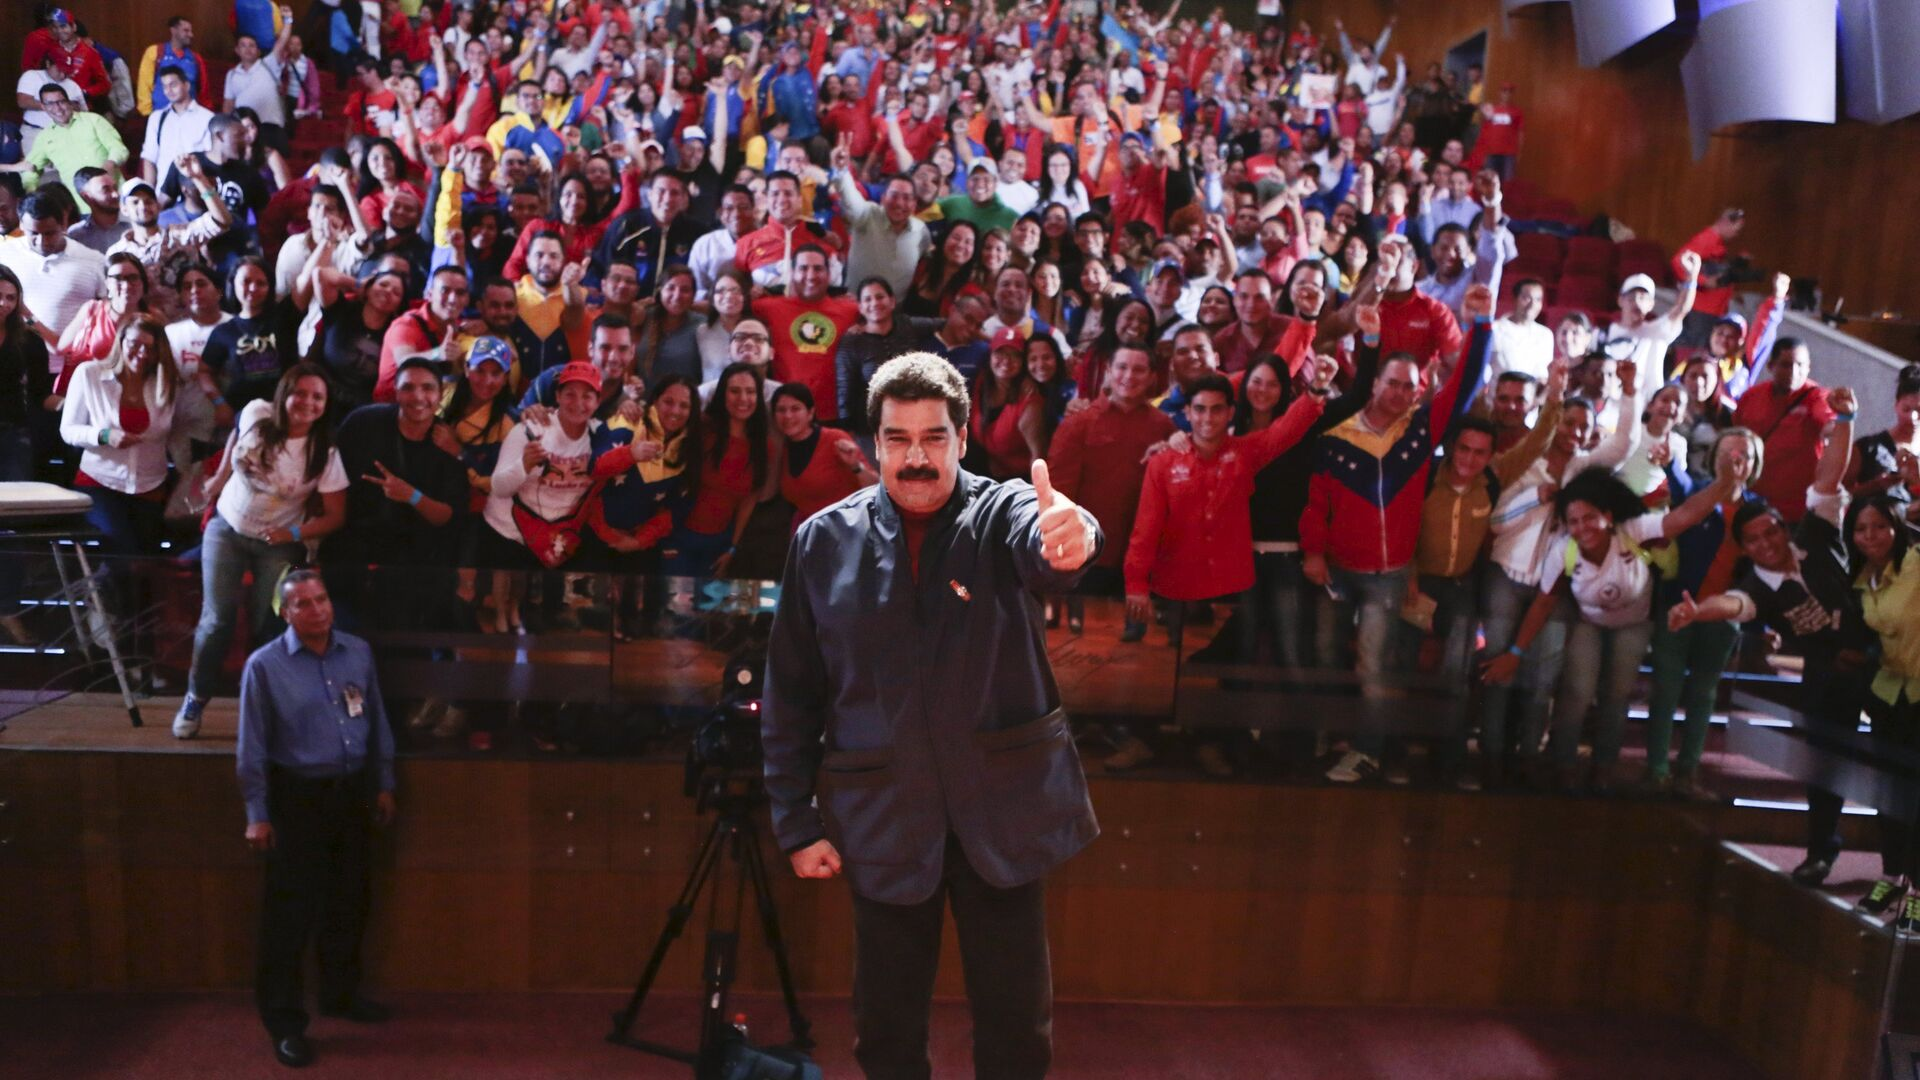 Venezuela's President Nicolas Maduro (C) poses for a photo during a meeting with members of the United Socialist Party of Venezuela (PSUV), in Caracas, in this May 27, 2015 handout picture provided by Miraflores Palace. - Sputnik Mundo, 1920, 25.05.2021